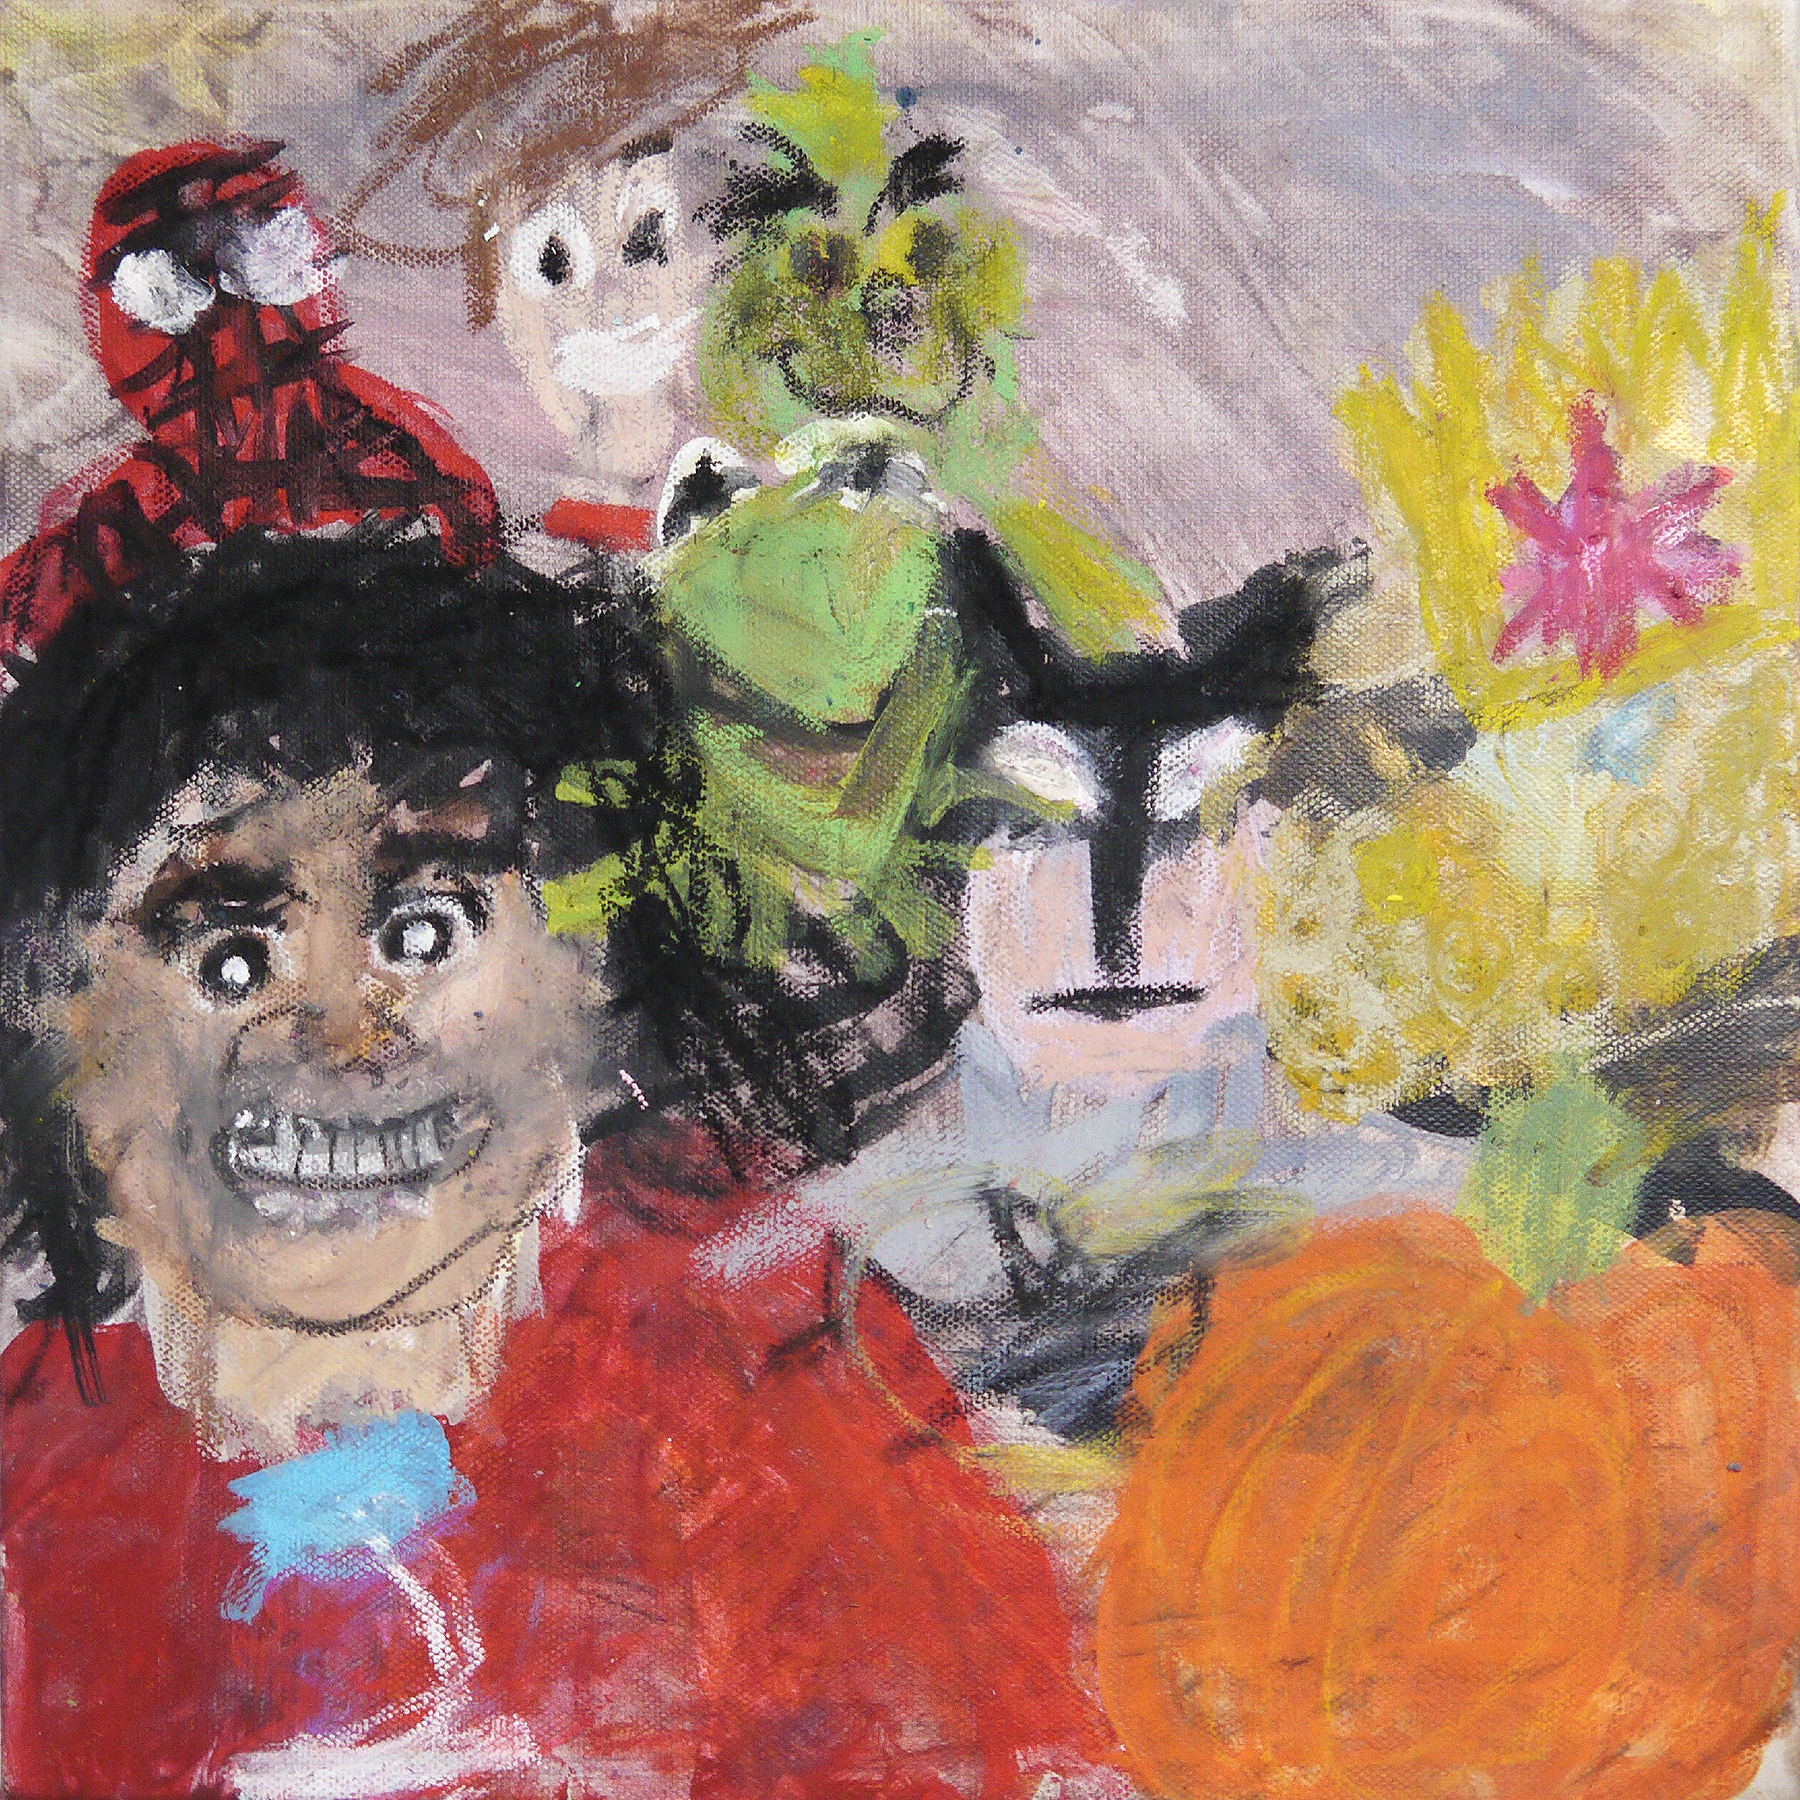 Michael Jackson and Spider-Man and TREASURE - acrylic and oil pastel on canvas - 2018.jpg